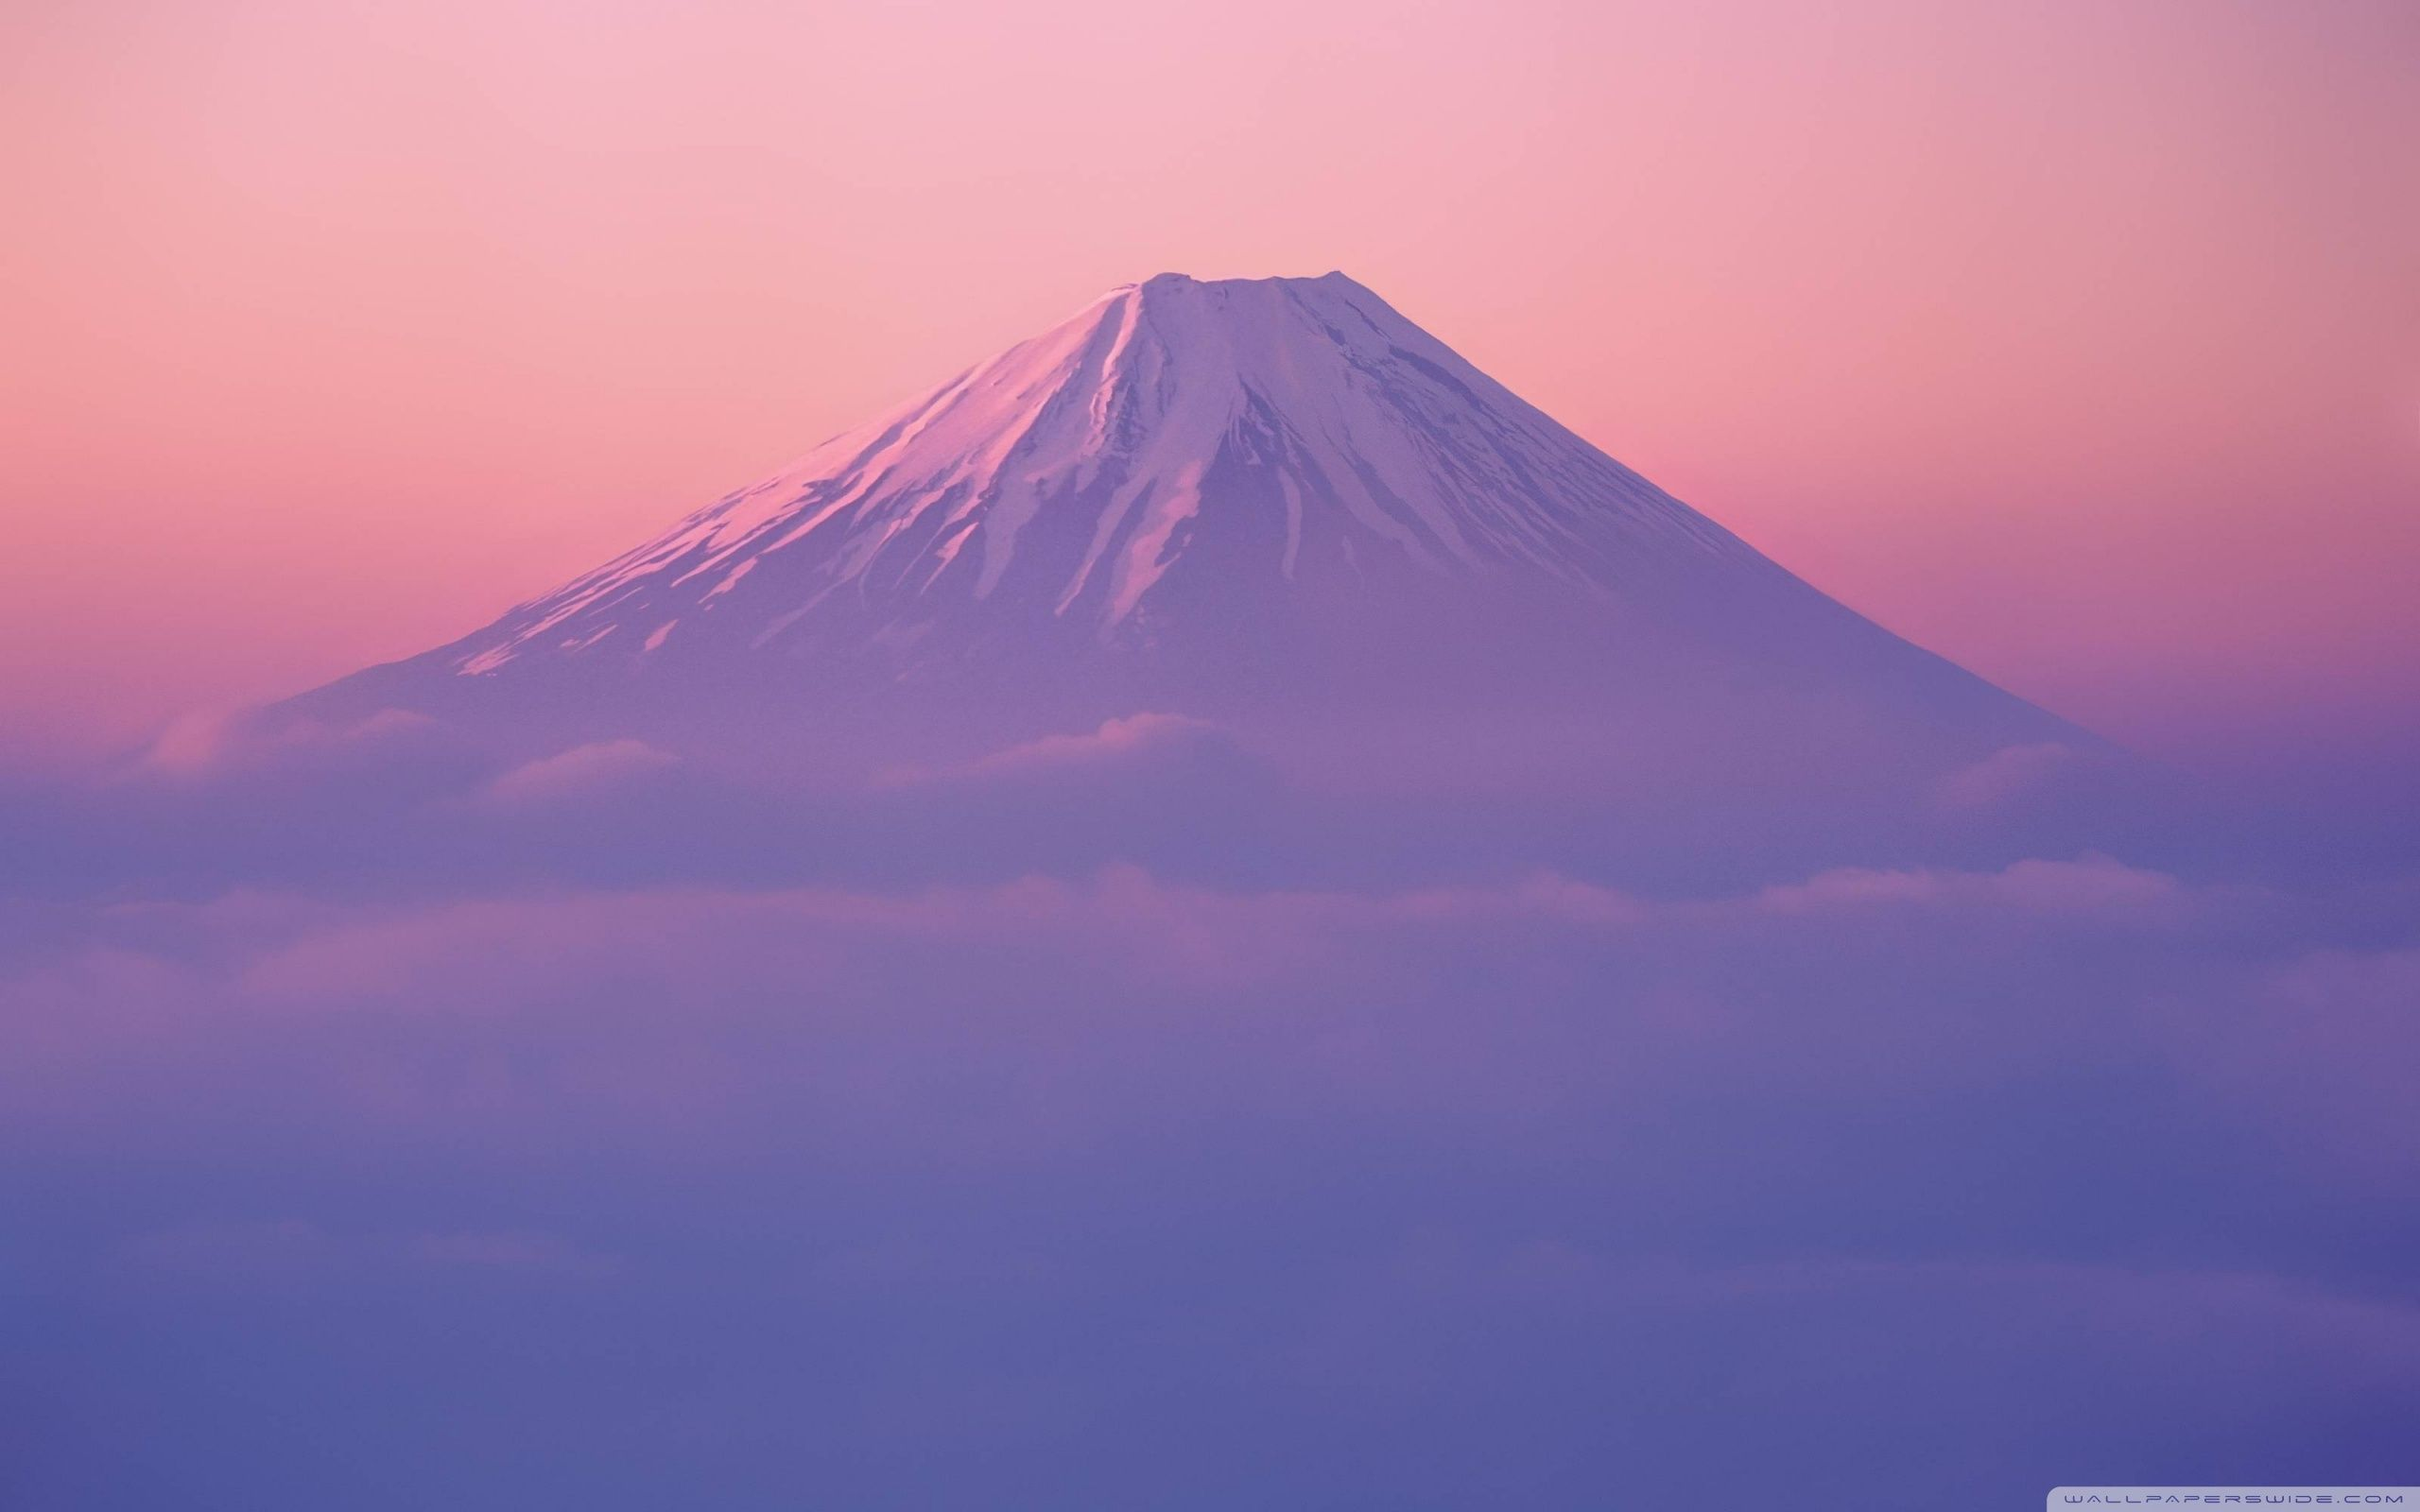 Views of mt fuji wallpapers top free views of mt fuji - Mac os x wallpaper 1920x1080 ...